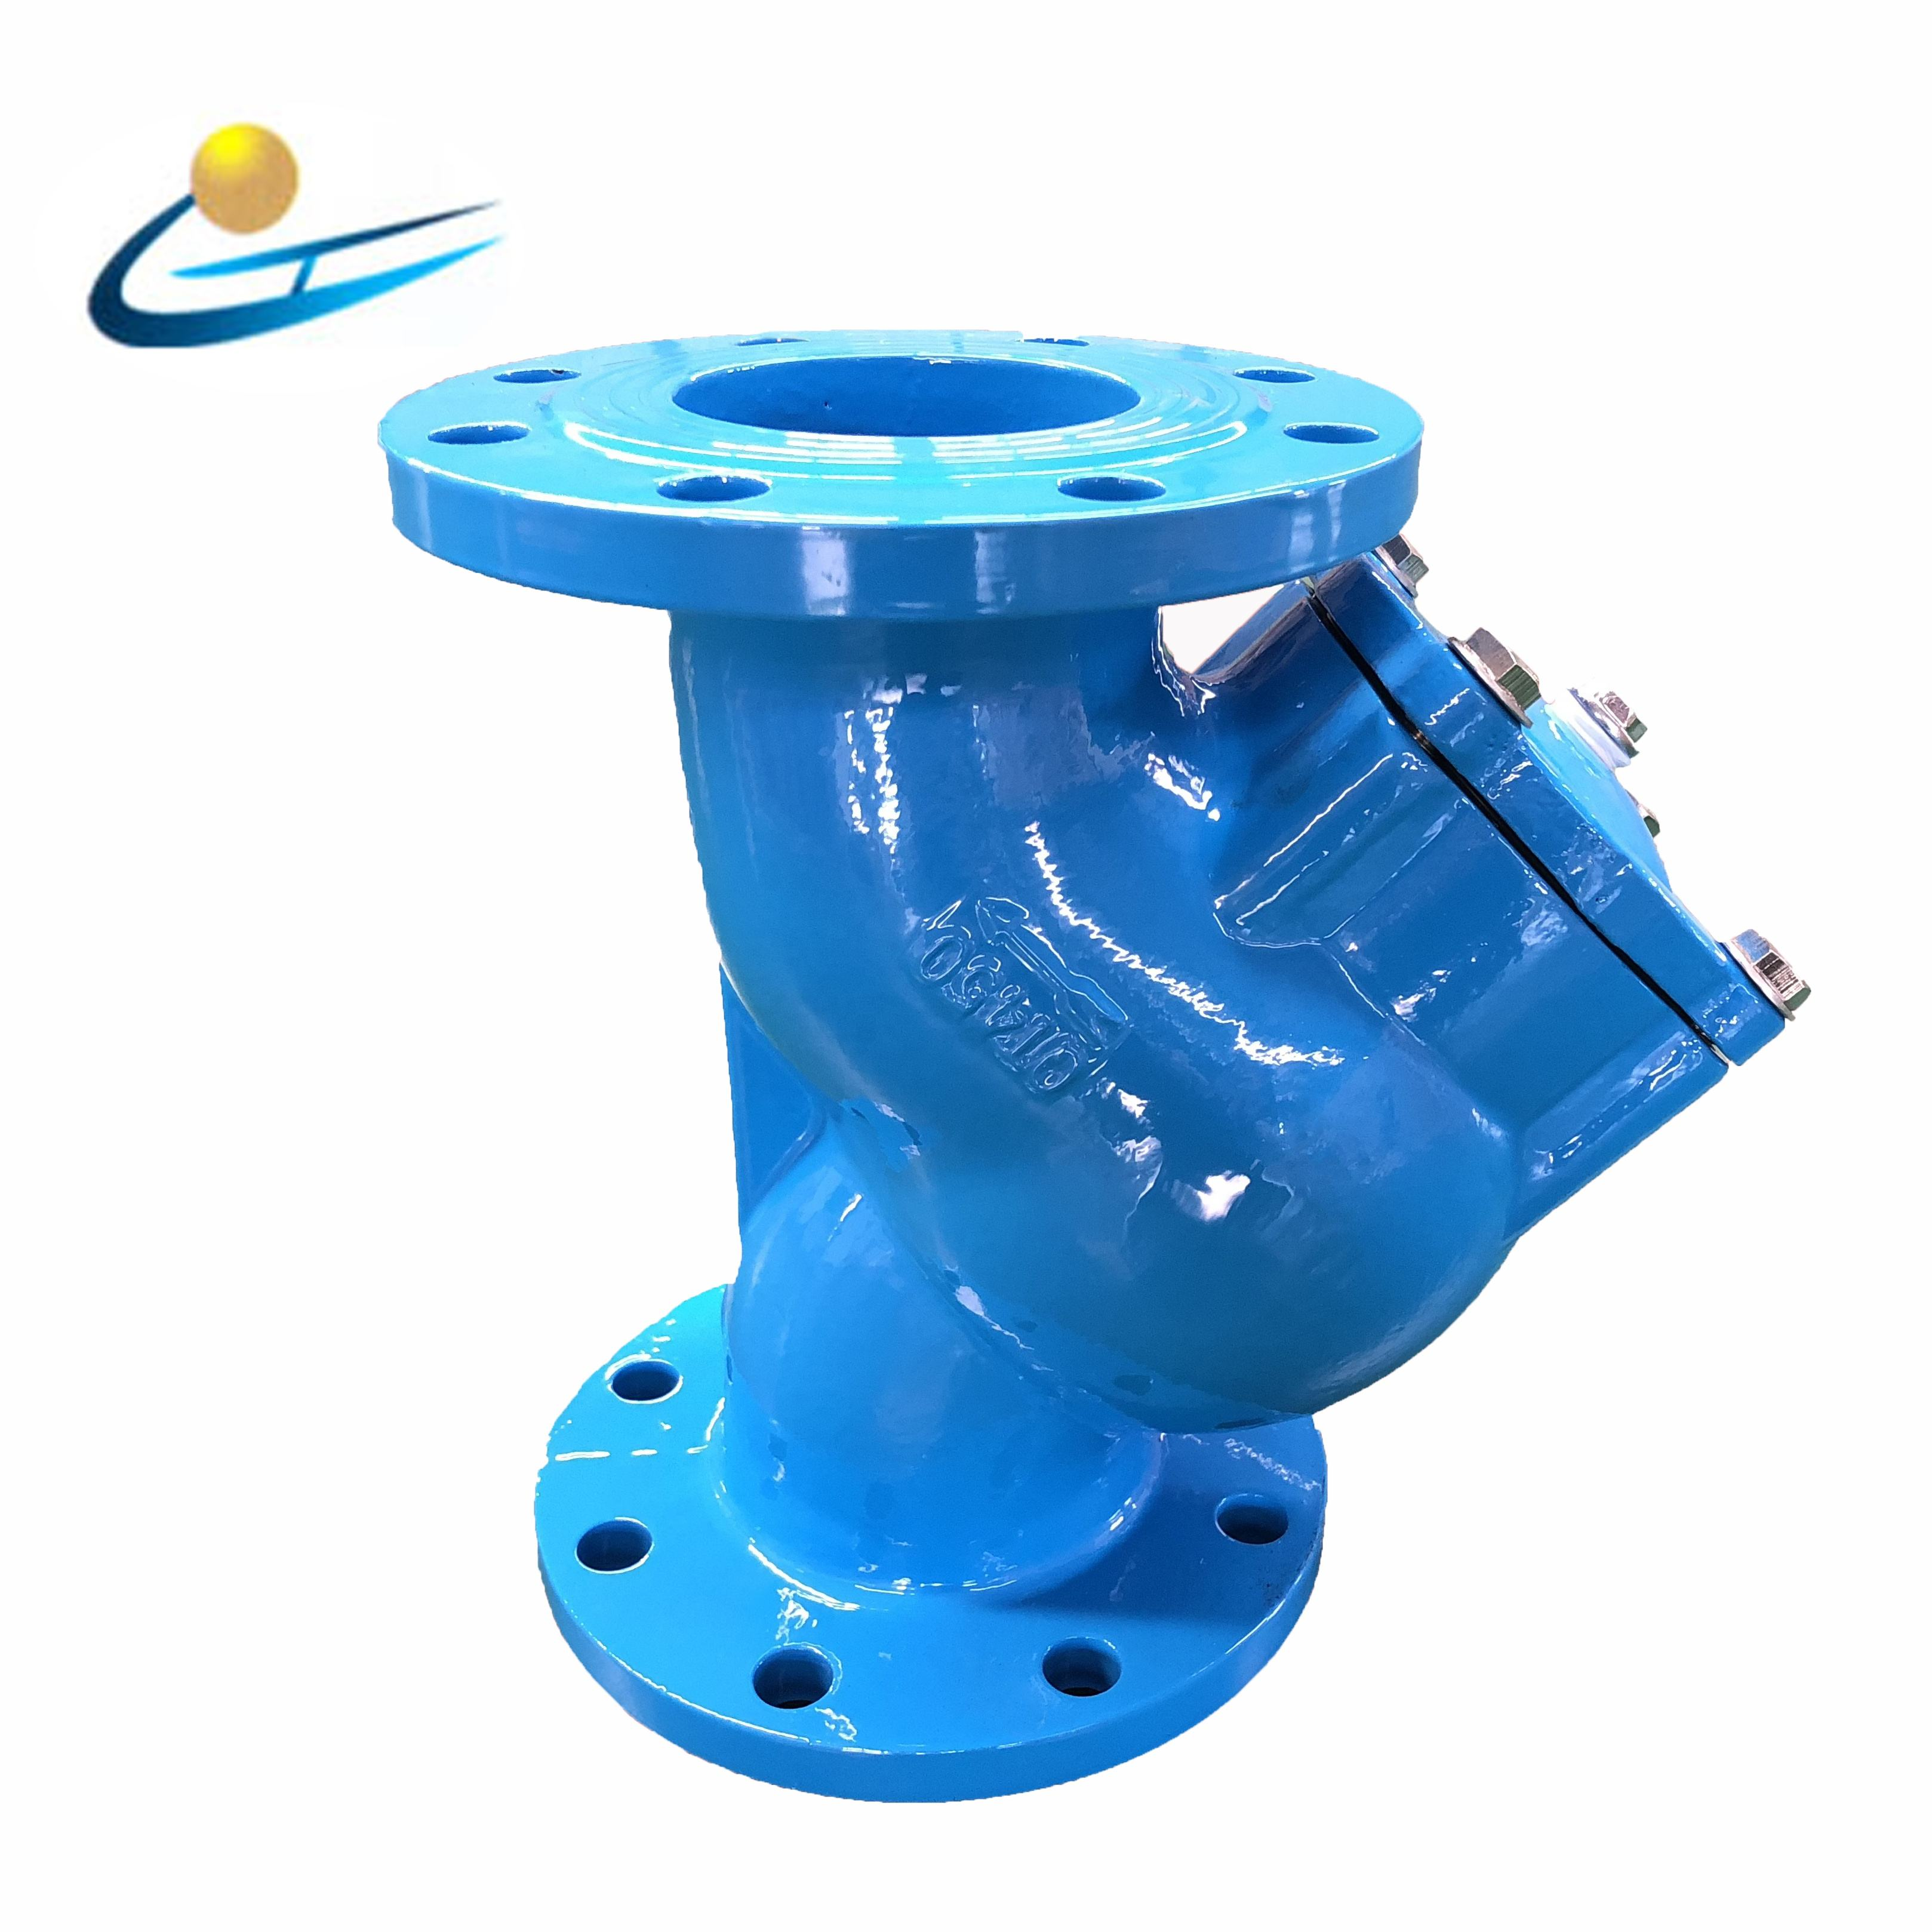 China factory price ductile iron GGG50 DN40 DN400 y type drain strainer prices y strainer